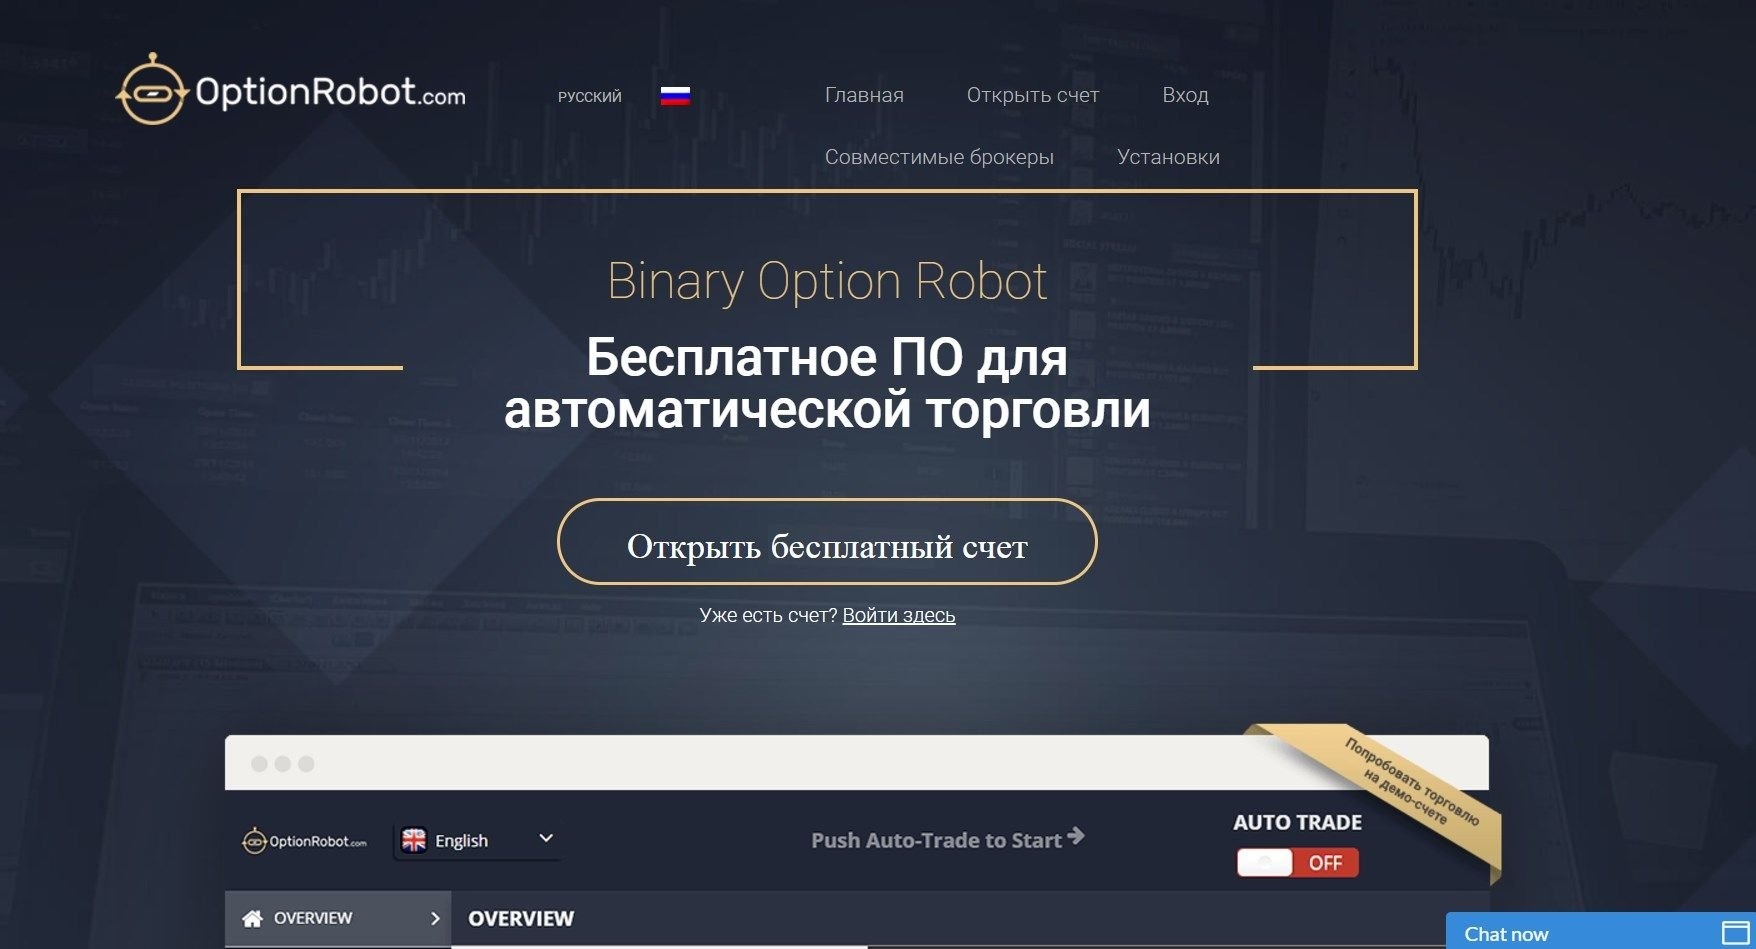 Бинарный робот OptionRobot